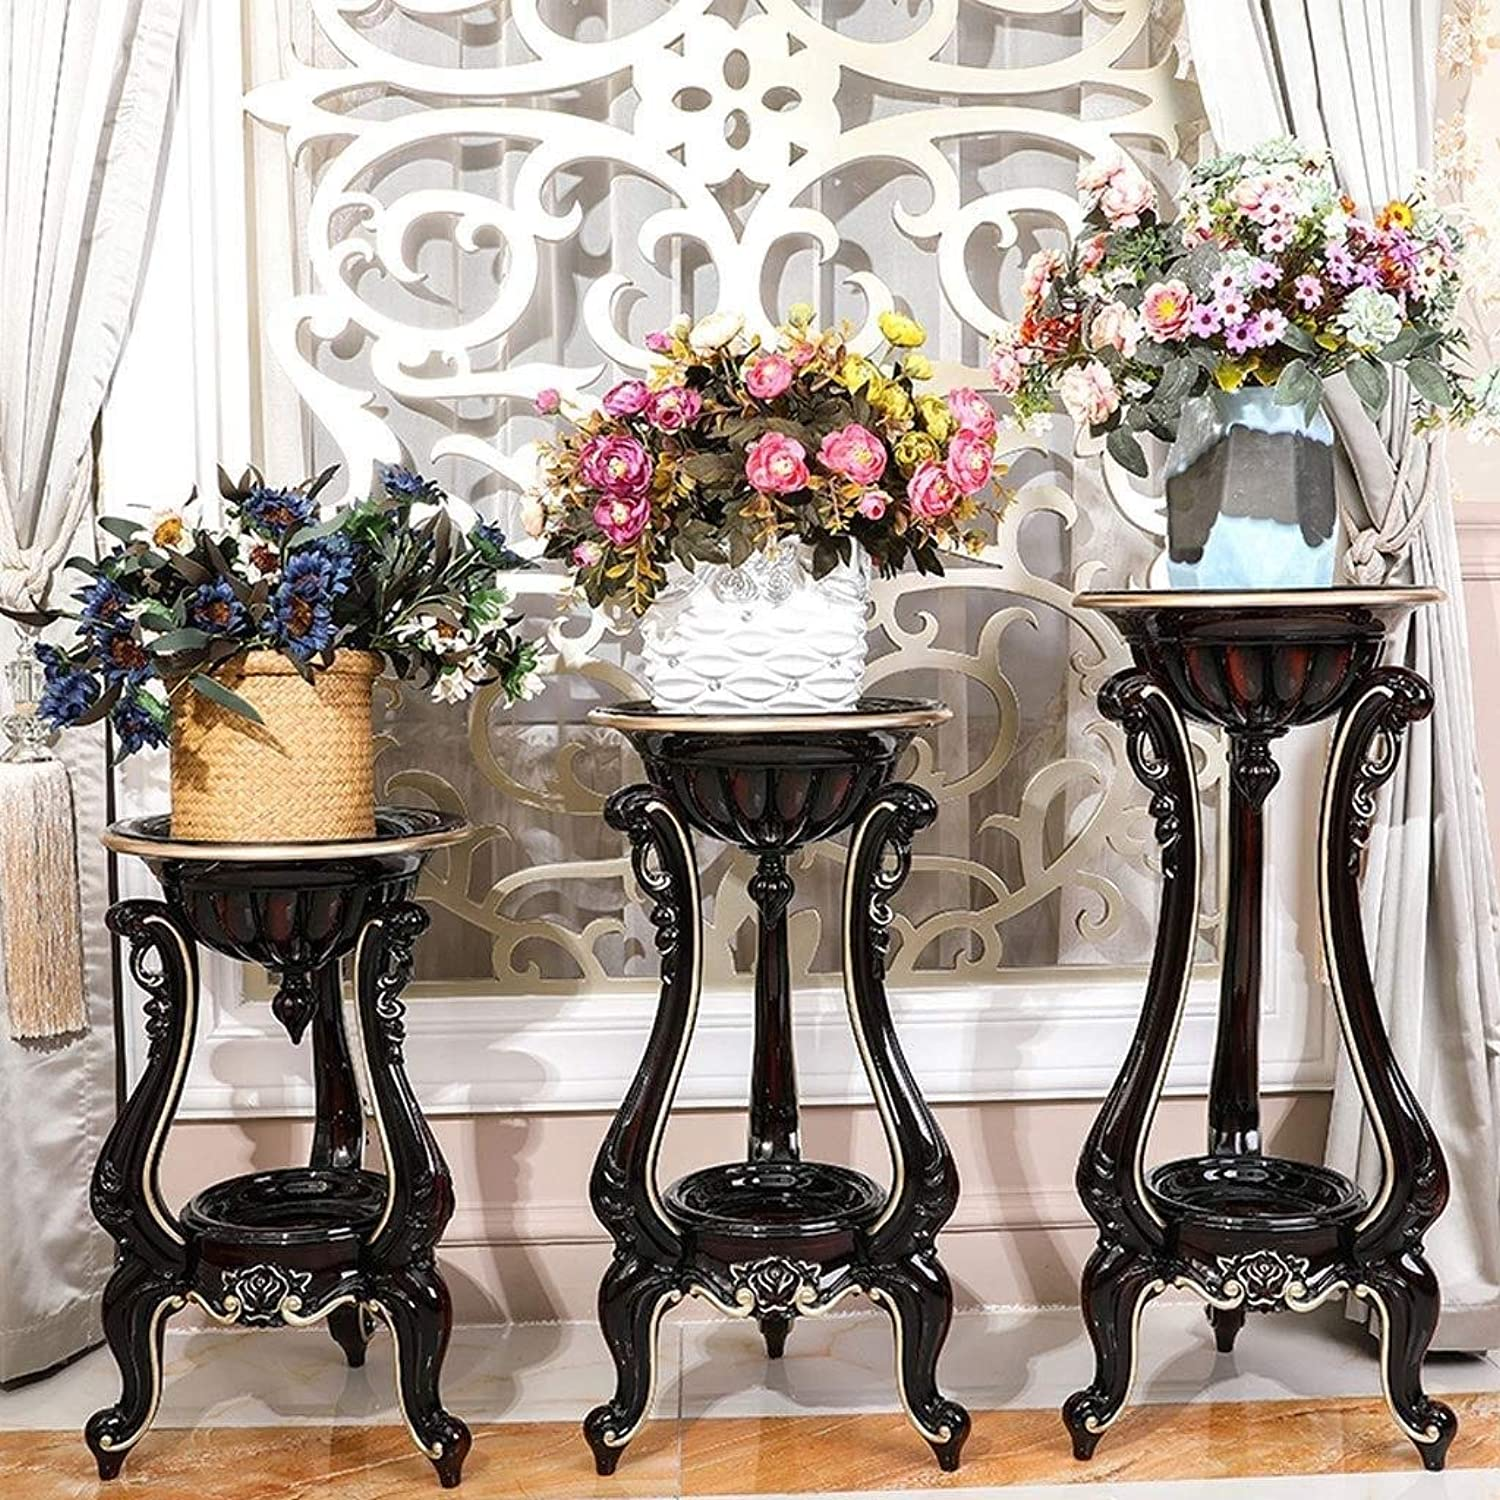 Flower Stand Metal Frame Plus Wood Pot Rack Floor Type Multi-Layer Plant Stand, Bonsai Display Stand, Multi-Function Storage Rack Rack (color   Black, Size   32  56cm)